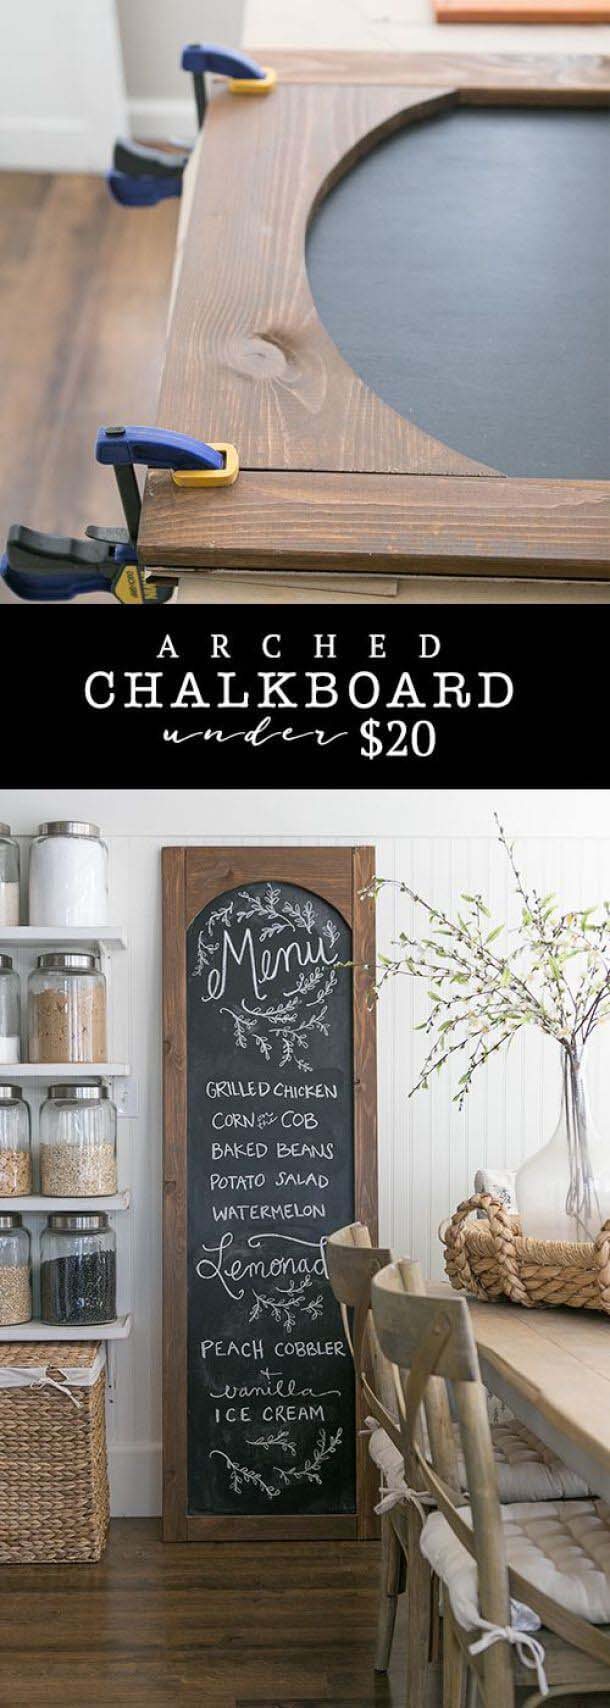 Cheap and Easy DIY Arched Chalkboard #walldecor #kitchen #decorhomeideas